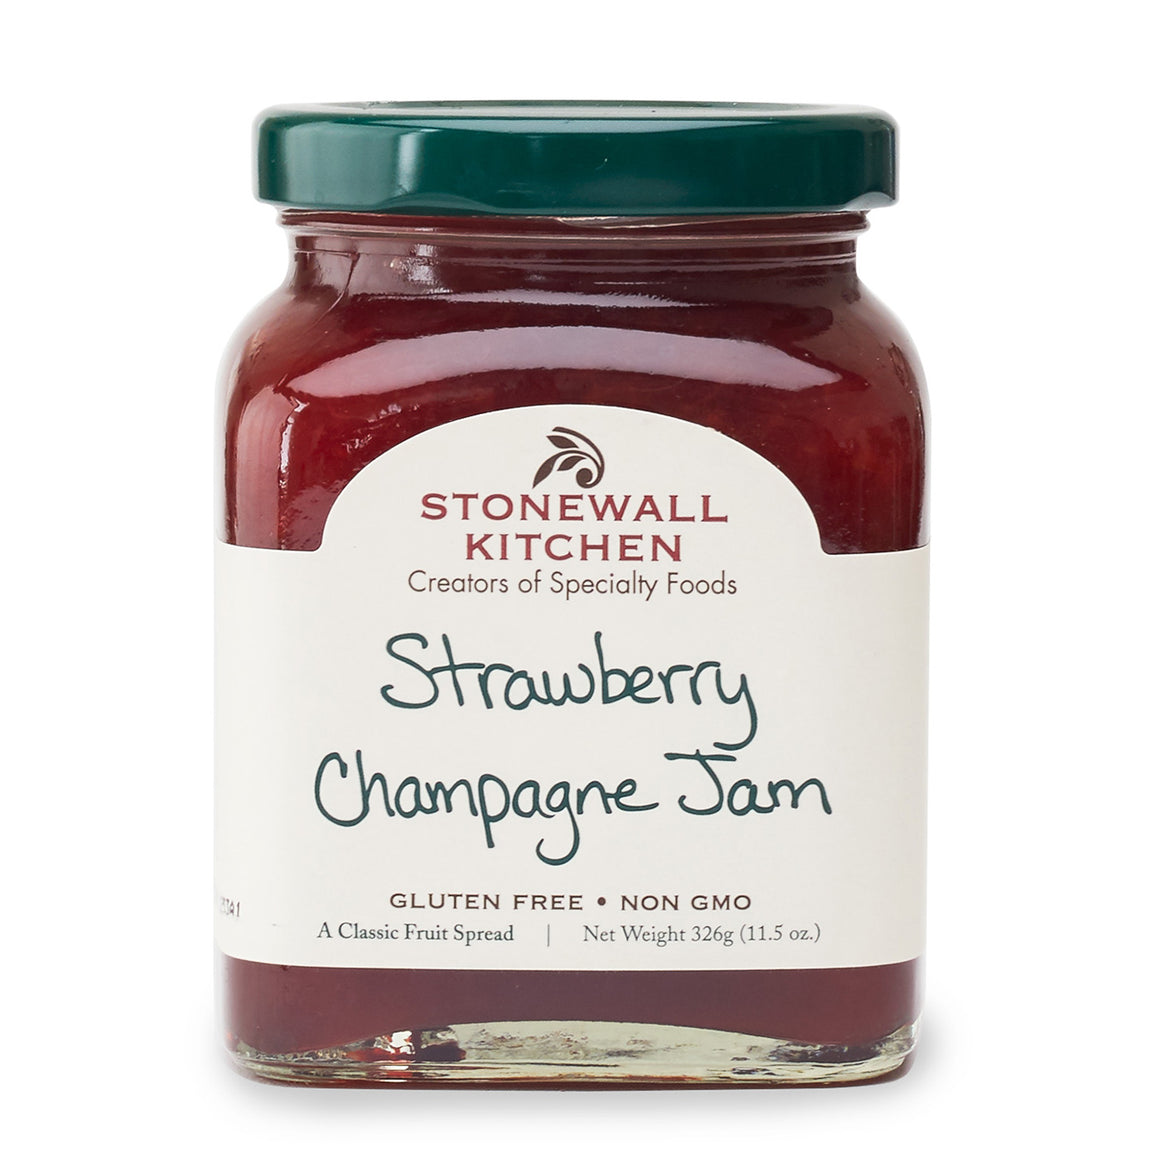 Strawberry Champagne Jam by Stonewall Kitchen